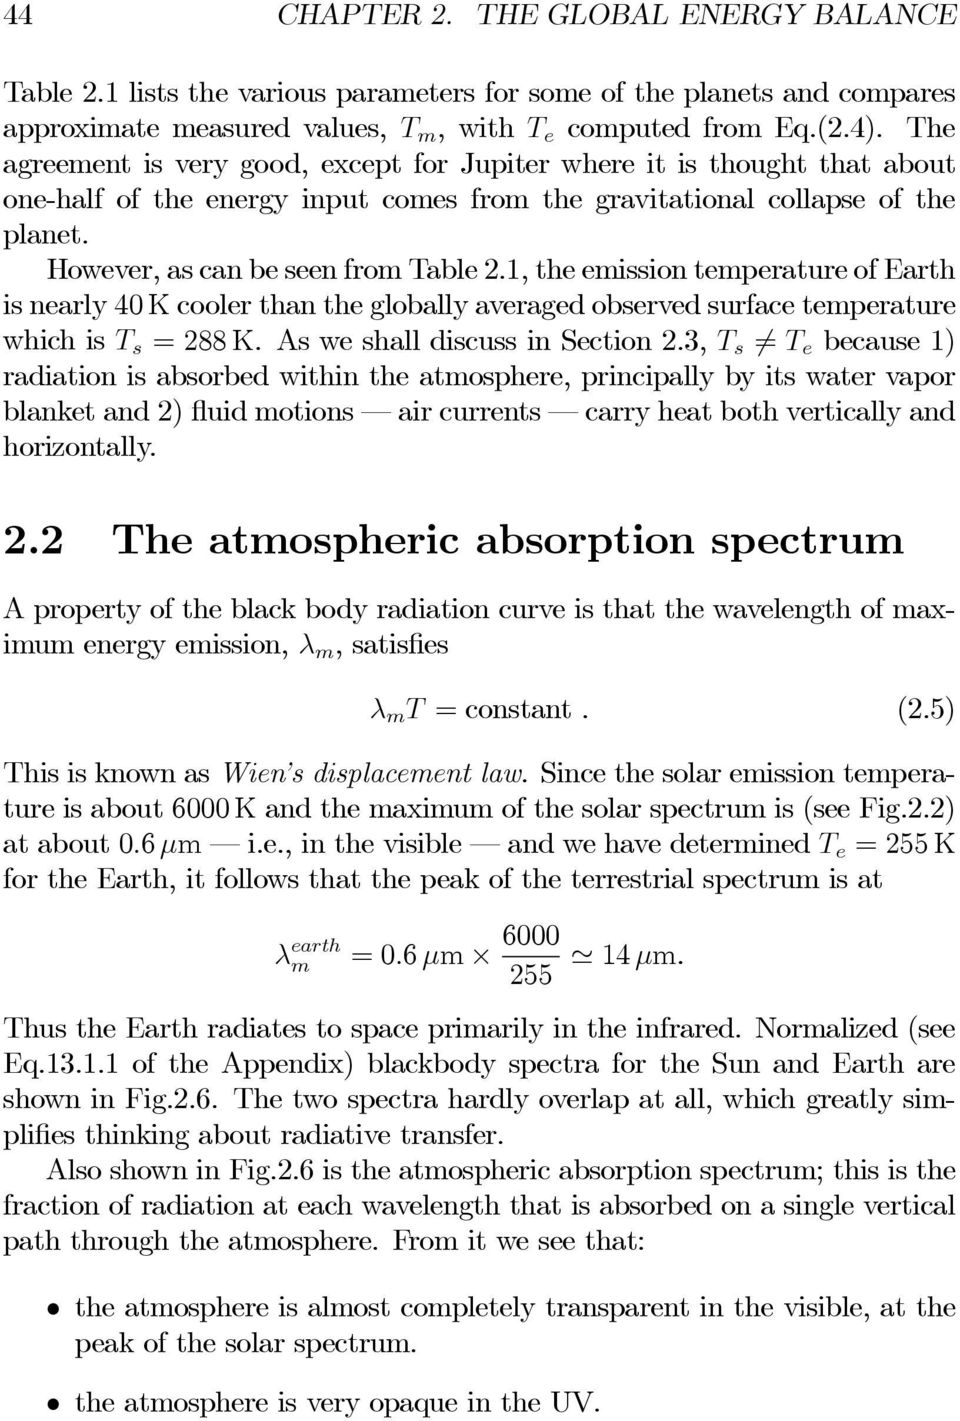 1, the emission temperature of Earth is nearly 40 K cooler than the globally averaged observed surface temperature which is T s =288K. AsweshalldiscussinSection2.